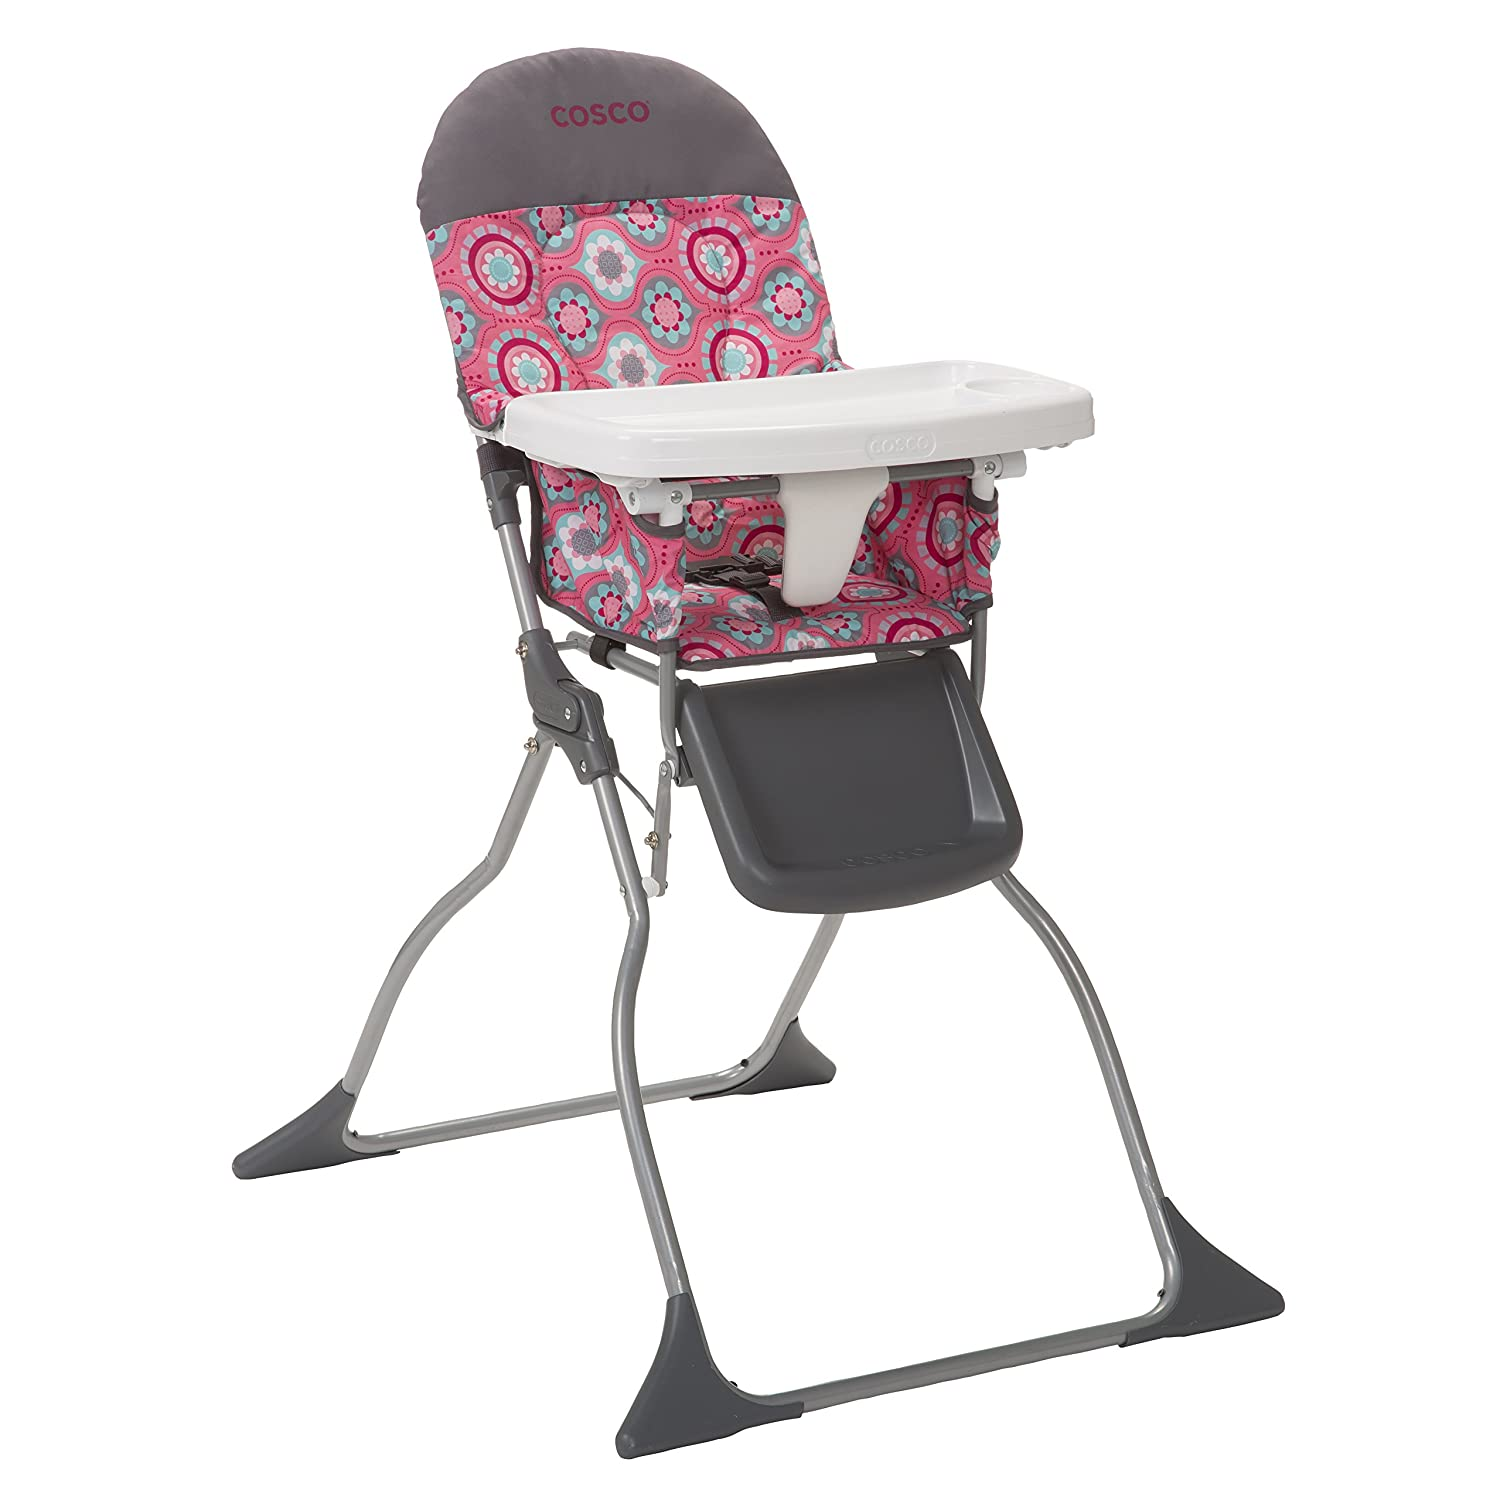 pact Fold Baby Infant Feeding High Chair Portable